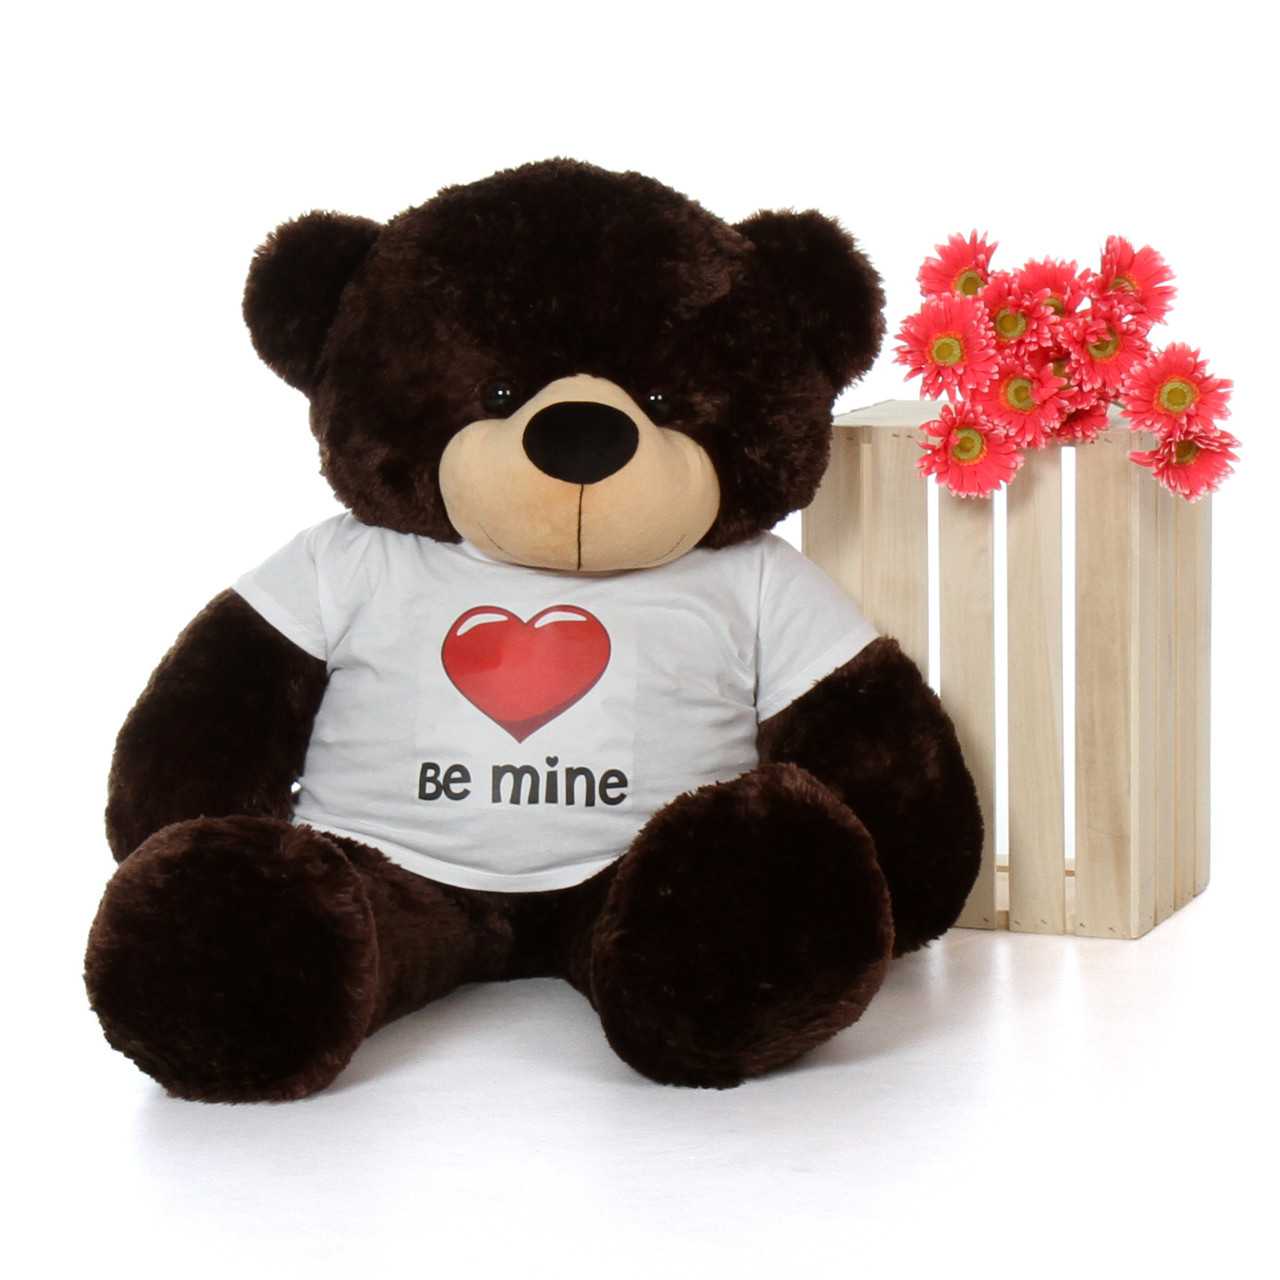 4ft Chocolate Brownie Cuddles Giant Teddy with a Be Mine Valentine's Day T-Shirt